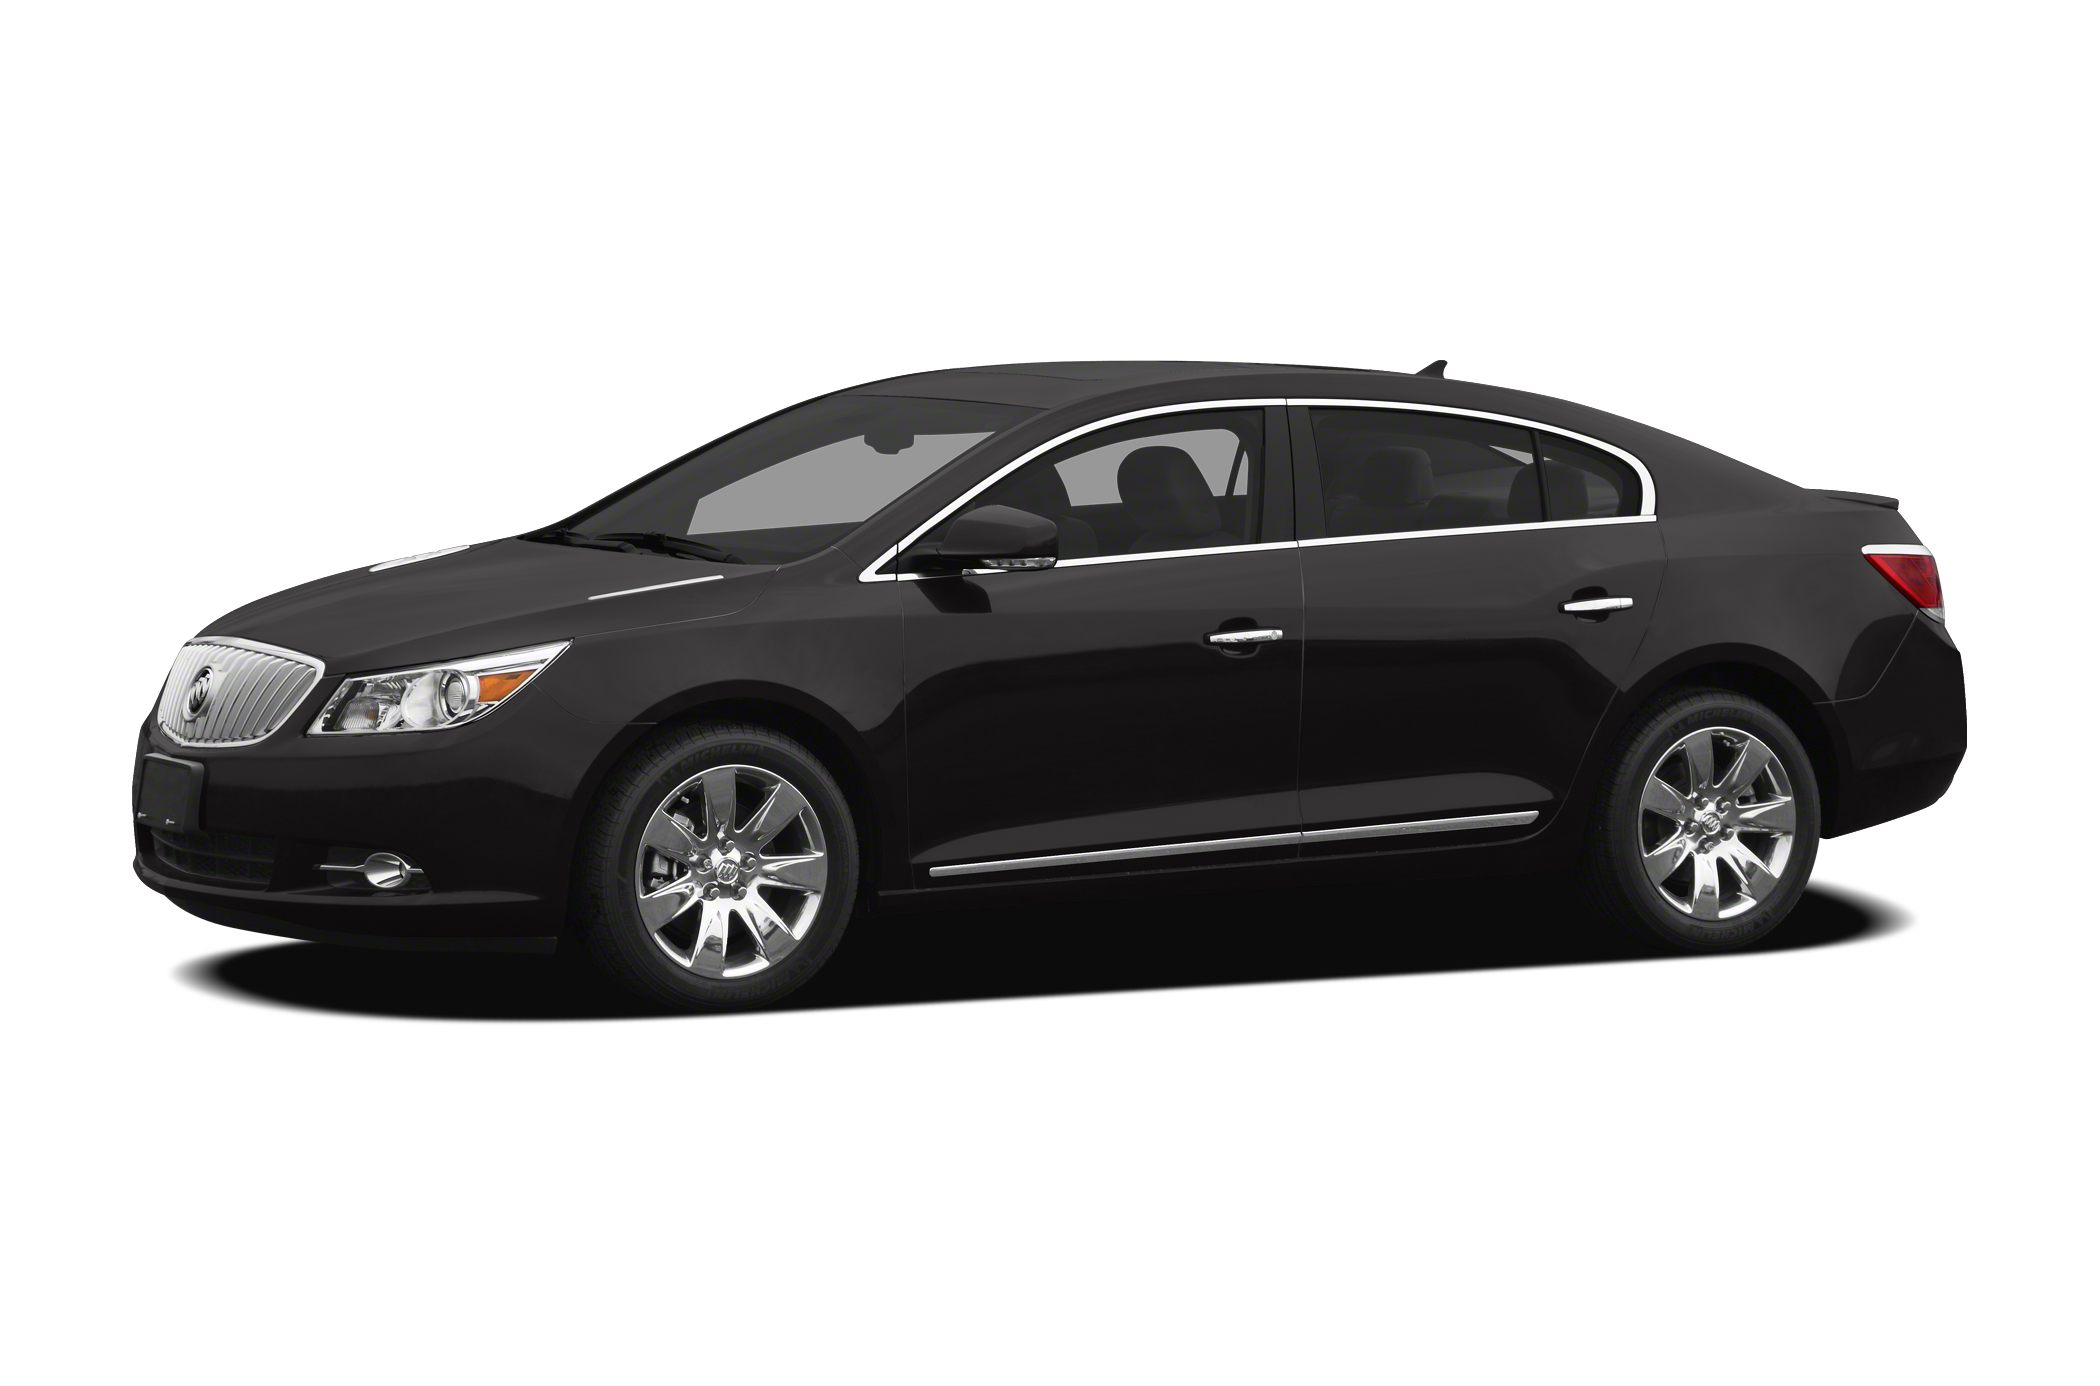 2013 Buick LaCrosse Leather Sedan for sale in Syracuse for $22,694 with 26,488 miles.